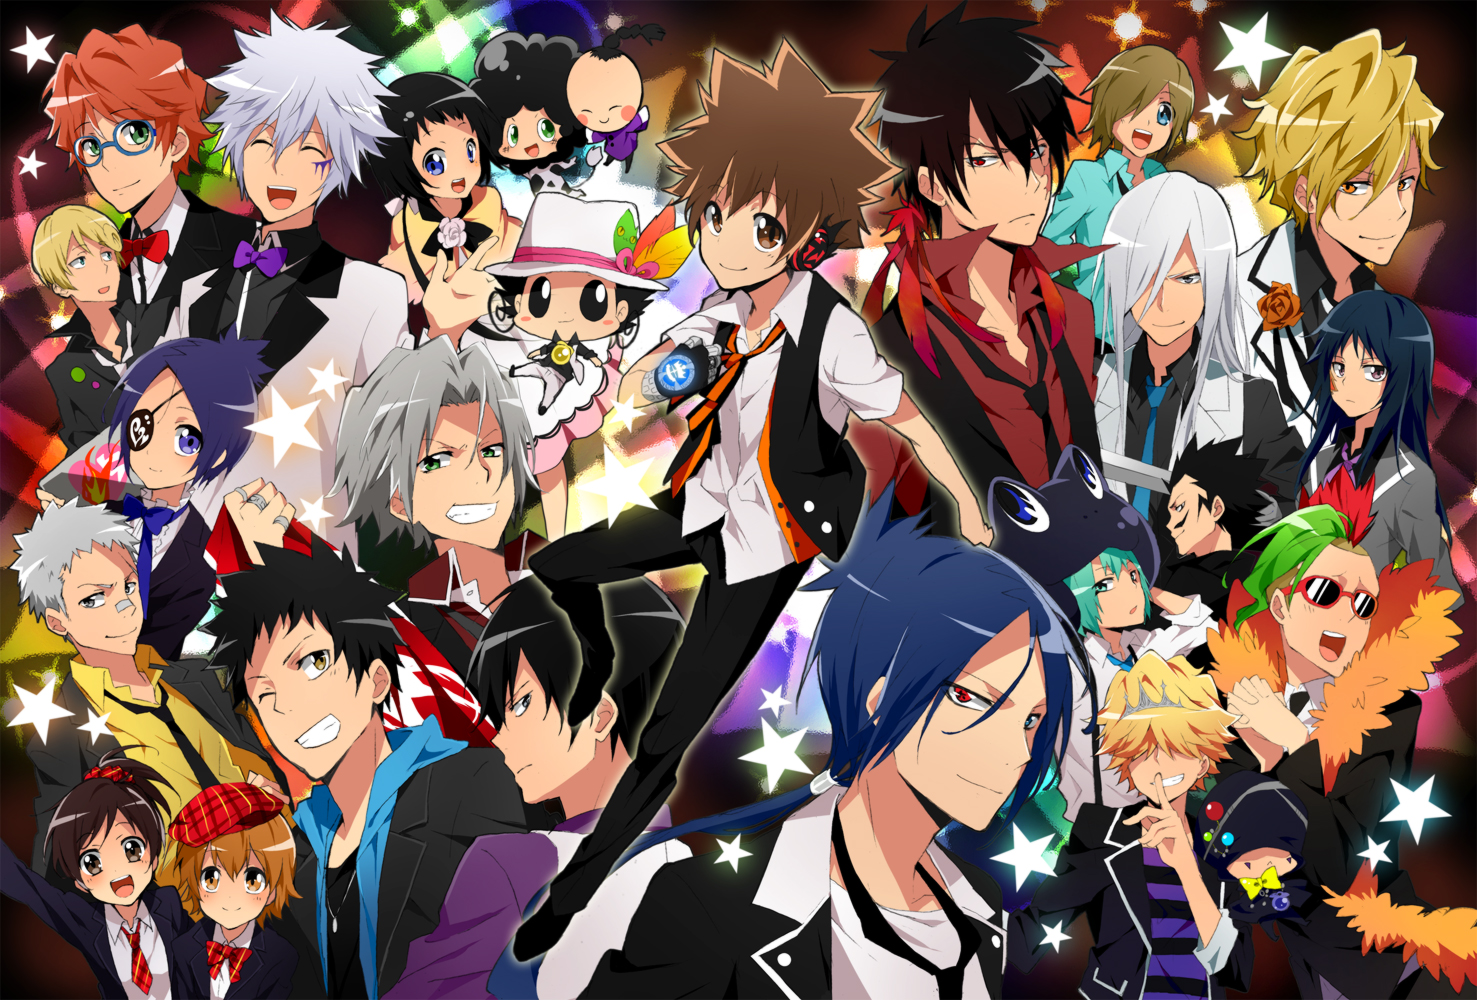 anime all together images khr hd wallpaper and background